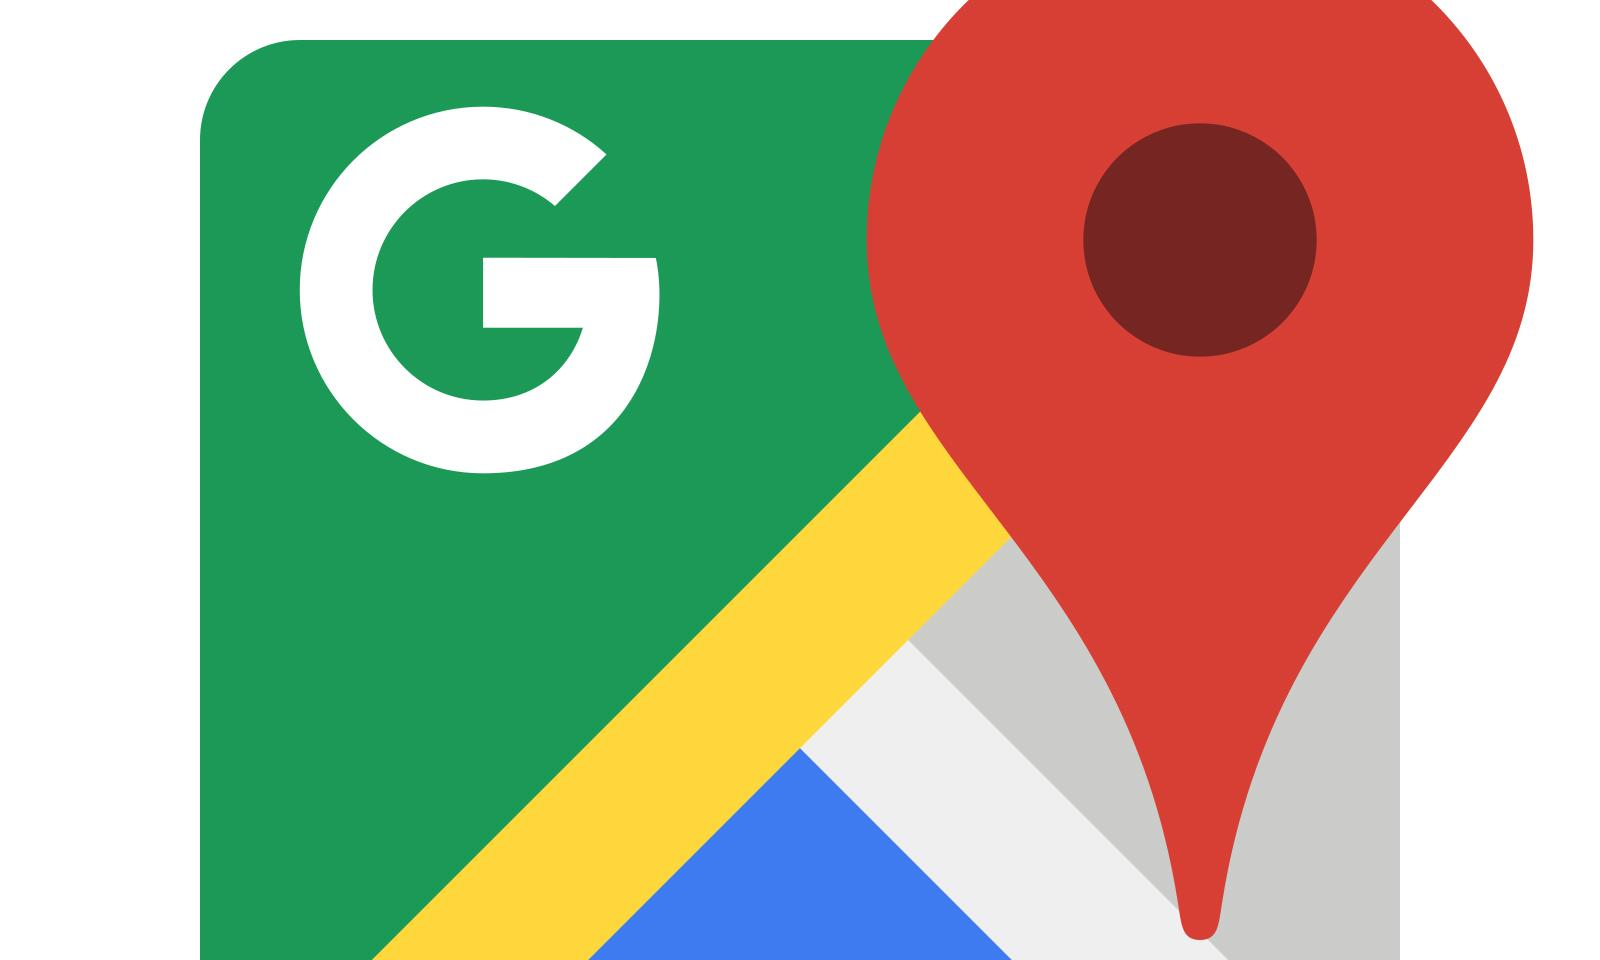 How to turn off Google's location tracking